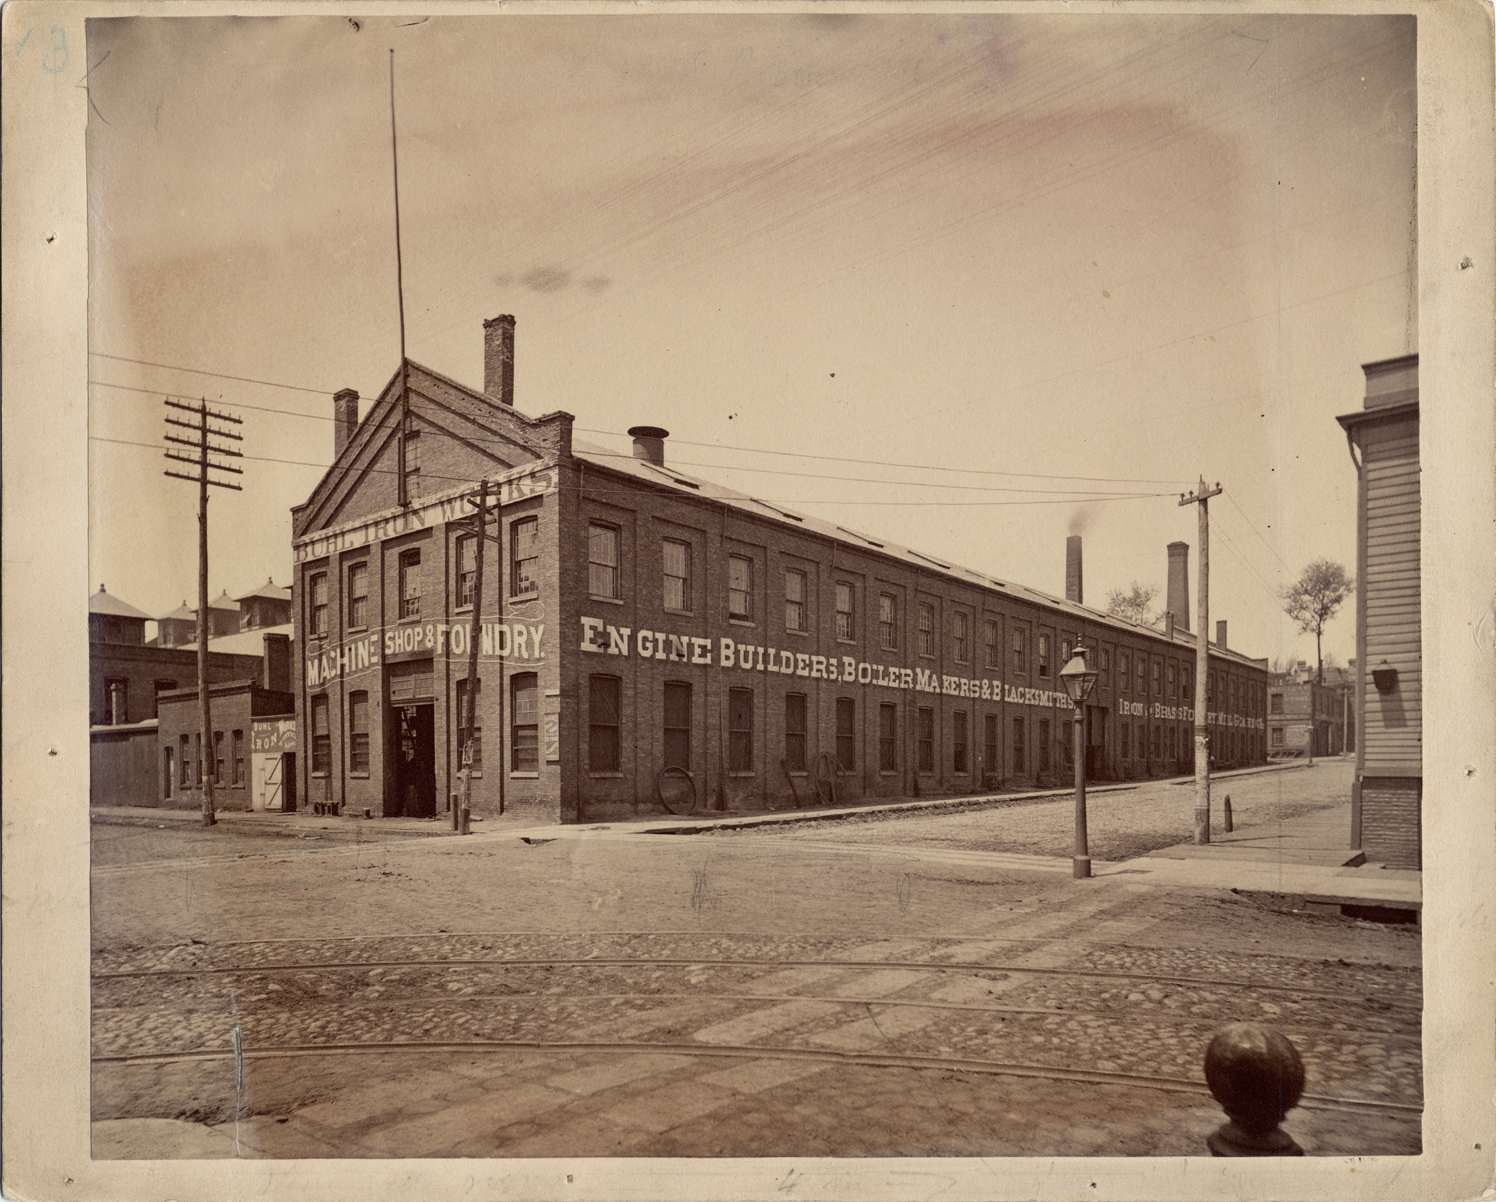 1850 - Buhl Iron Works started